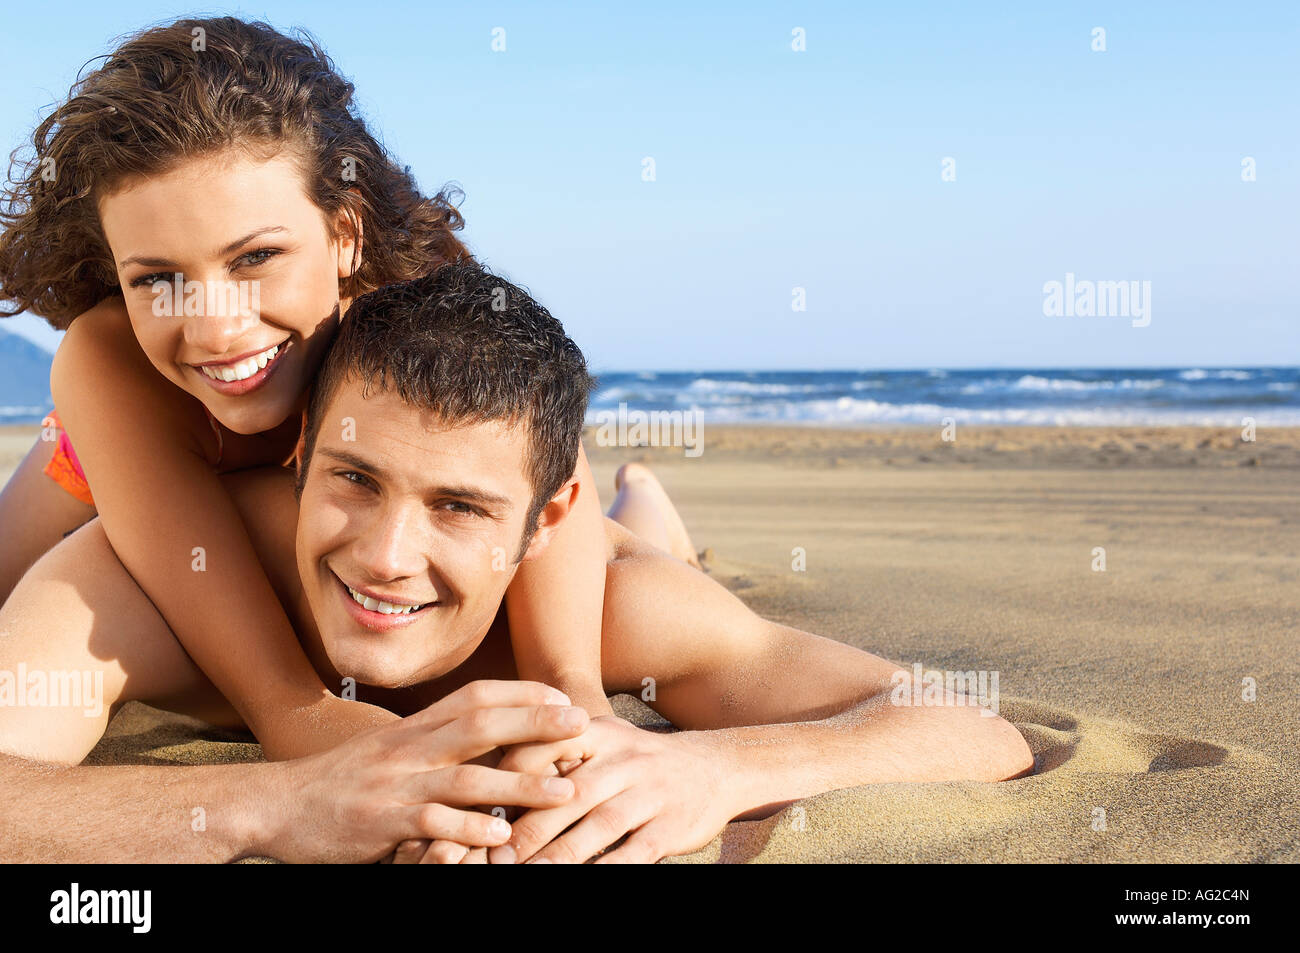 Young woman lying on back of man on beach, portrait, ground view - Stock Image